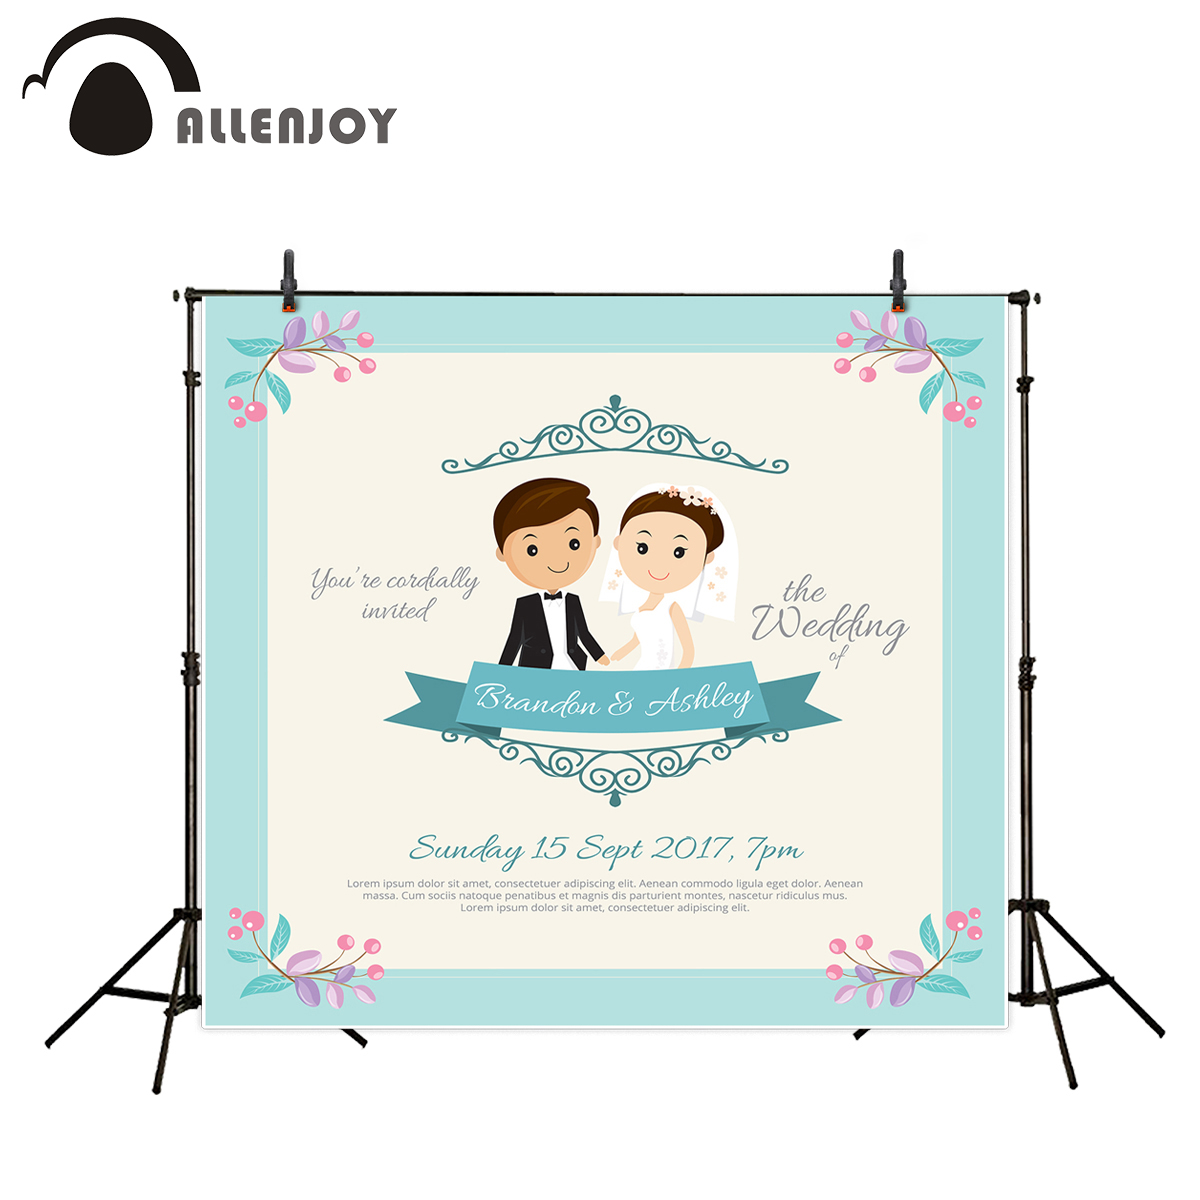 Allenjoy backgrounds for photo wood wedding love pure customized backdrop for photographing Valentine's Day backdrops